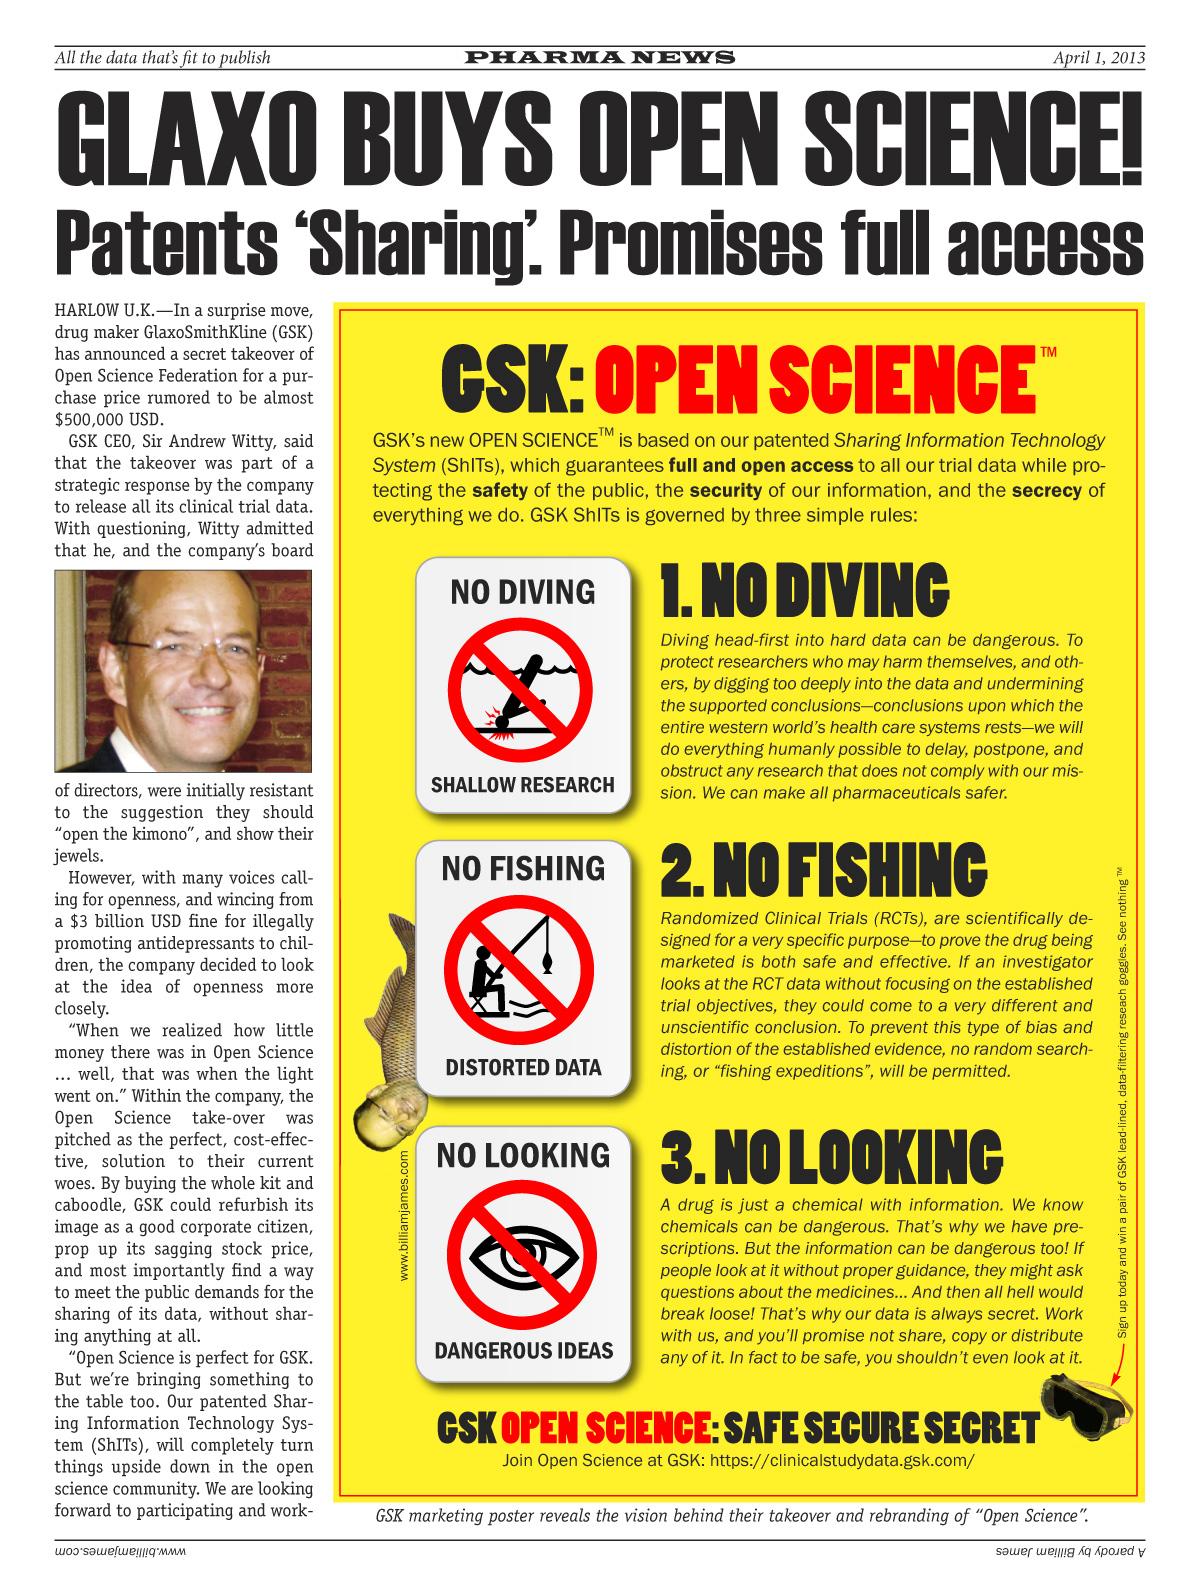 "Glaxo Buys Open Science. Patents Sharing. Promises Full Access. In a surprise move, drug maker GlaxoSmithKline (GSK) has announced a secret takeover of Open Science Federation for a purchase price rumored to be almost $500,000 USD. GSK CEO, Sir Andrew Witty, said that the takeover was part of a strategic response by the company to release all its clinical trial data. With questioning, Witty admitted that he, and the company's board of directors, were initially resistant to the suggestion they should ""open the kimono"", and show their jewels. However, with many voices calling for openness, and wincing from  a $3 billion USD fine for illegally promoting antidepressants to children, the company decided to look at the idea of openness more closely.""When we realized how little money there was in Open Science ... well, that was when the light went on."" Within the company, the Open Science take-over was pitched as the perfect, cost-effective, solution to their current woes. By buying the whole kit and caboodle, GSK could refurbish its image as a good corporate citizen, prop up its sagging stock price, and most importantly find a way to meet the public demands for the sharing of its data, without sharing anything at all. ""Open Science is perfect for GSK. But we're bringing something to the table too. Our patented Sharing Information Technology System (ShITs), will completely turn things upside down in the open science community."